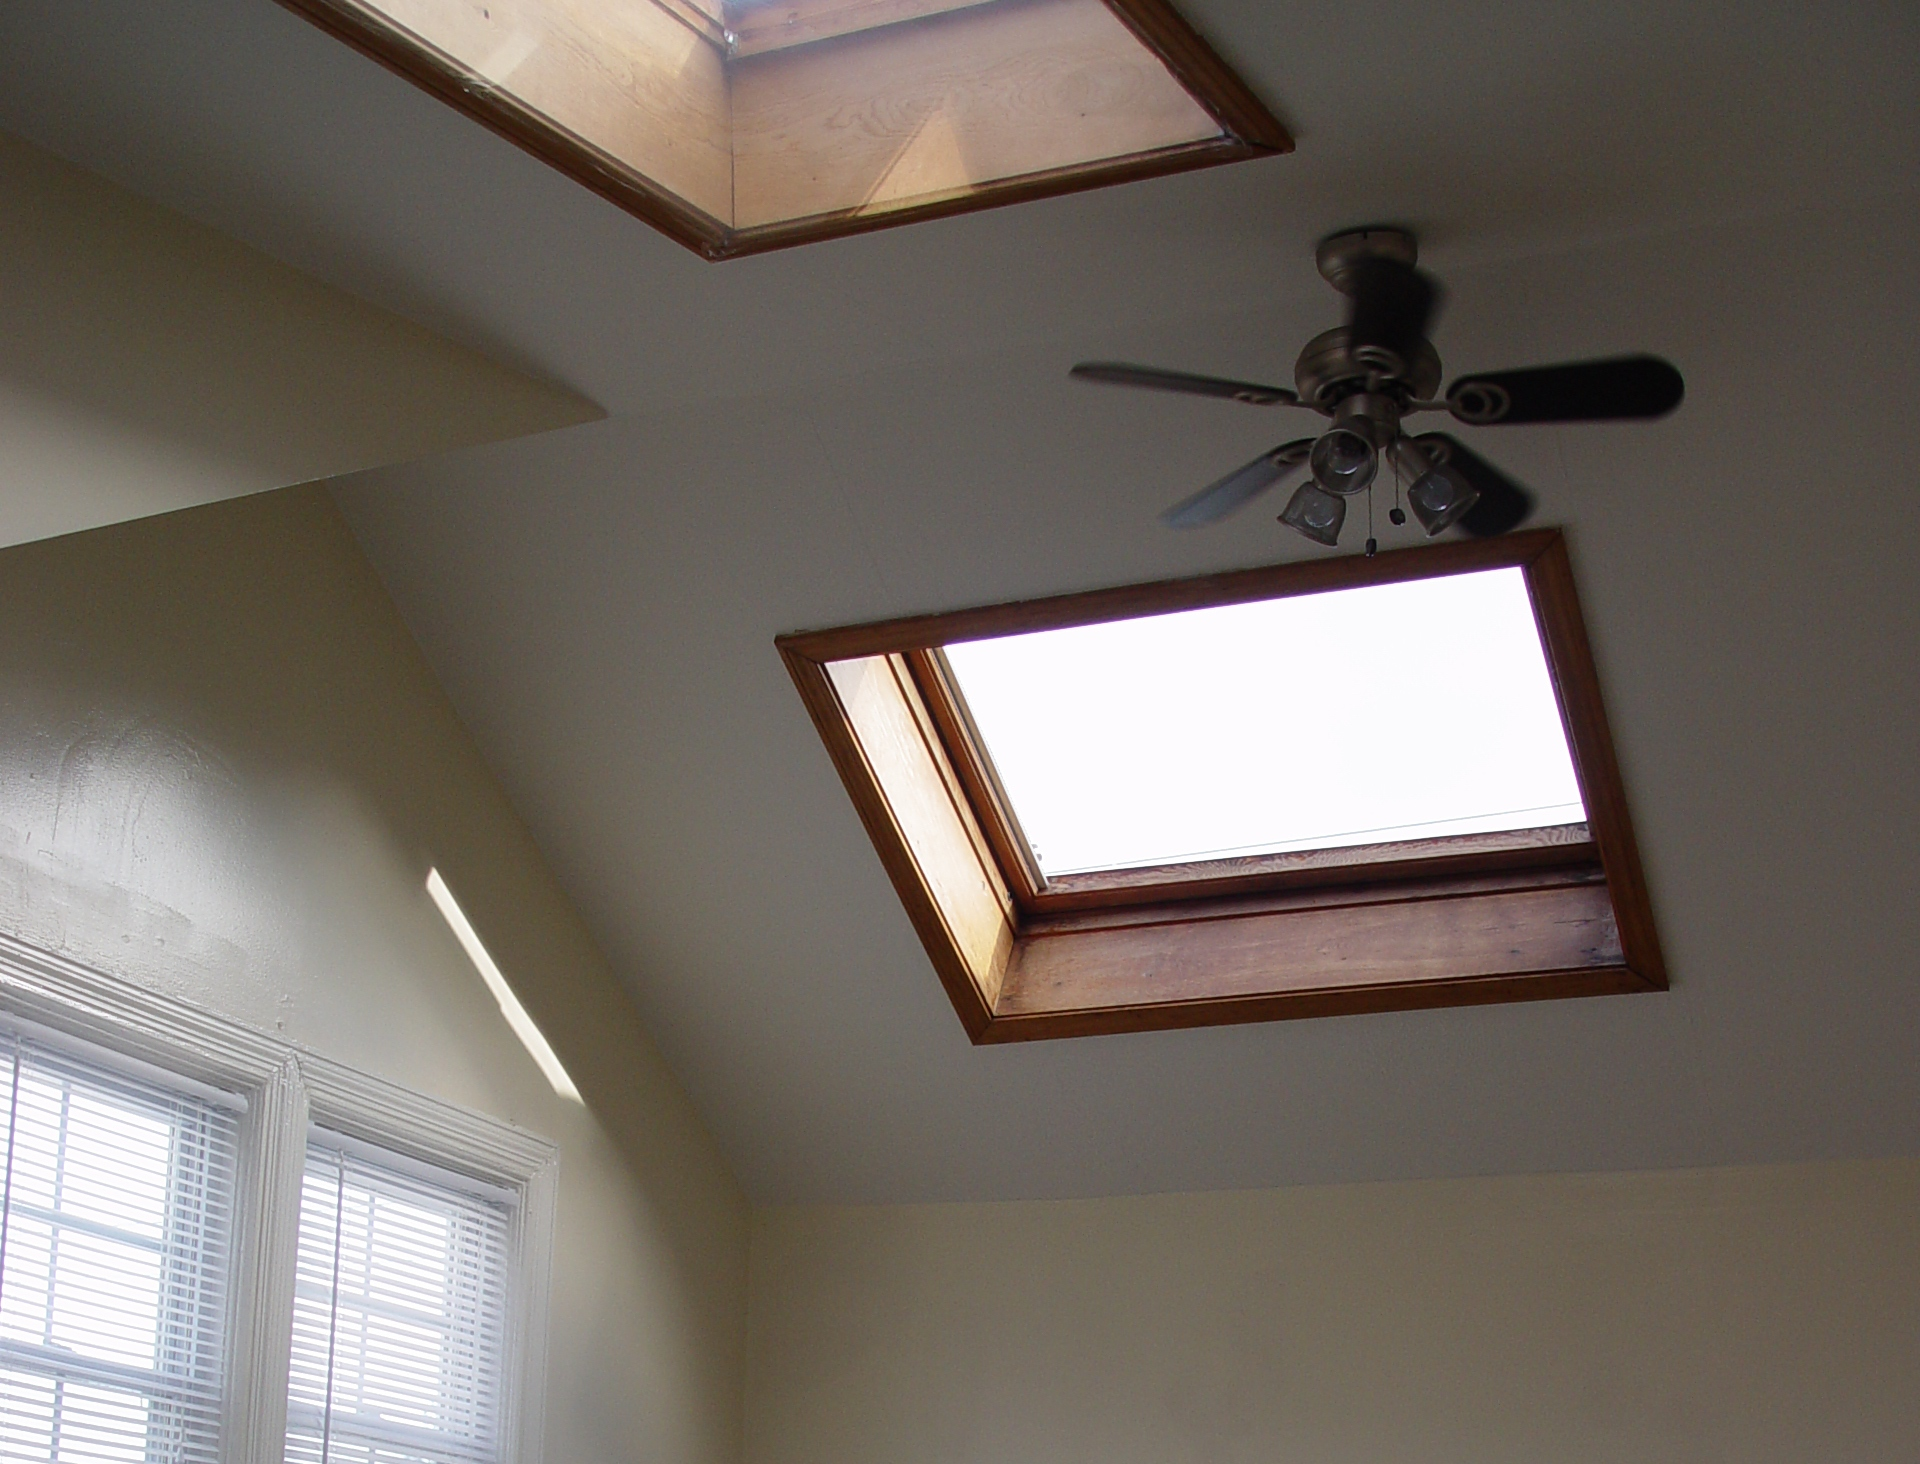 Window In Ceiling know well about the designs and importance of vent windows